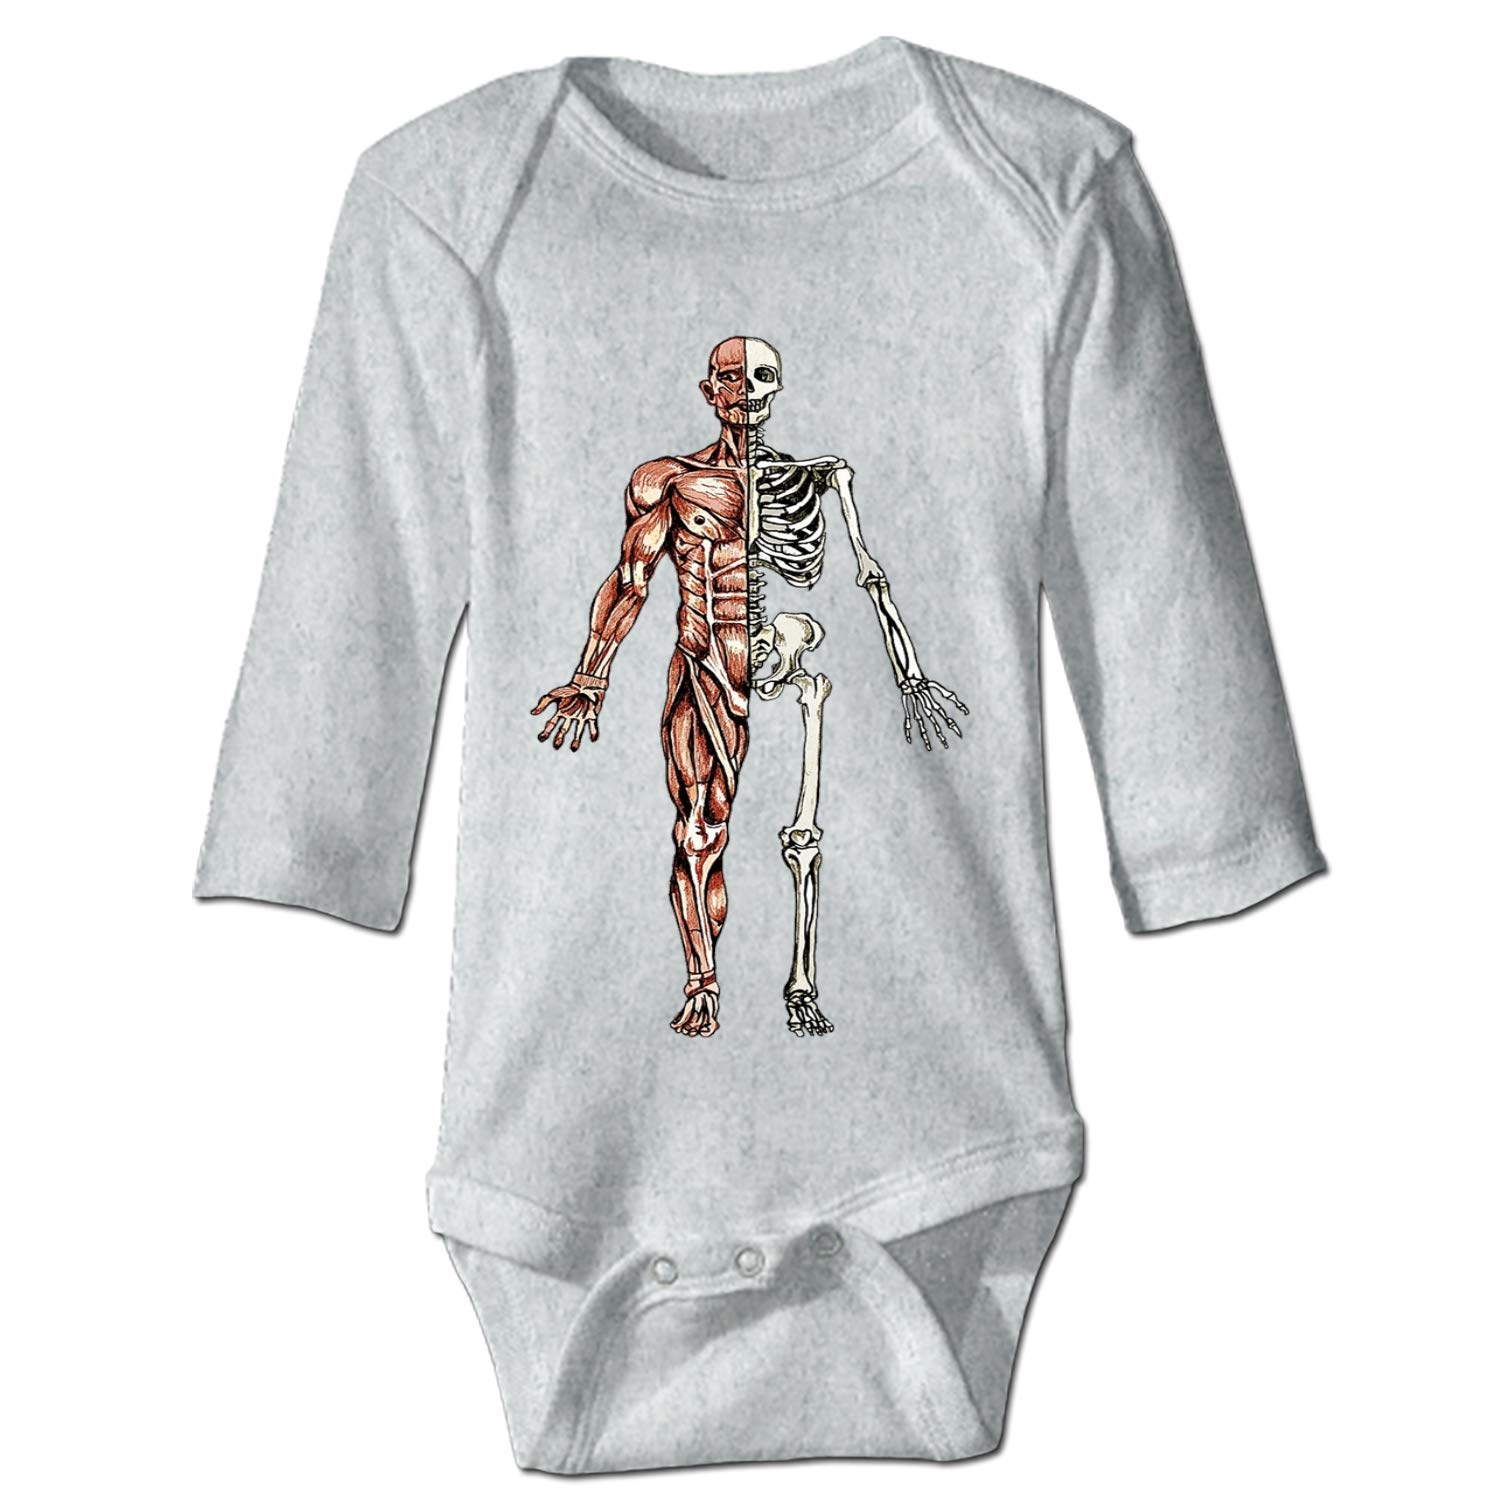 Human Anatomy Baby Girl Clothes Long Sleeve Onesies Romper Home Outfit